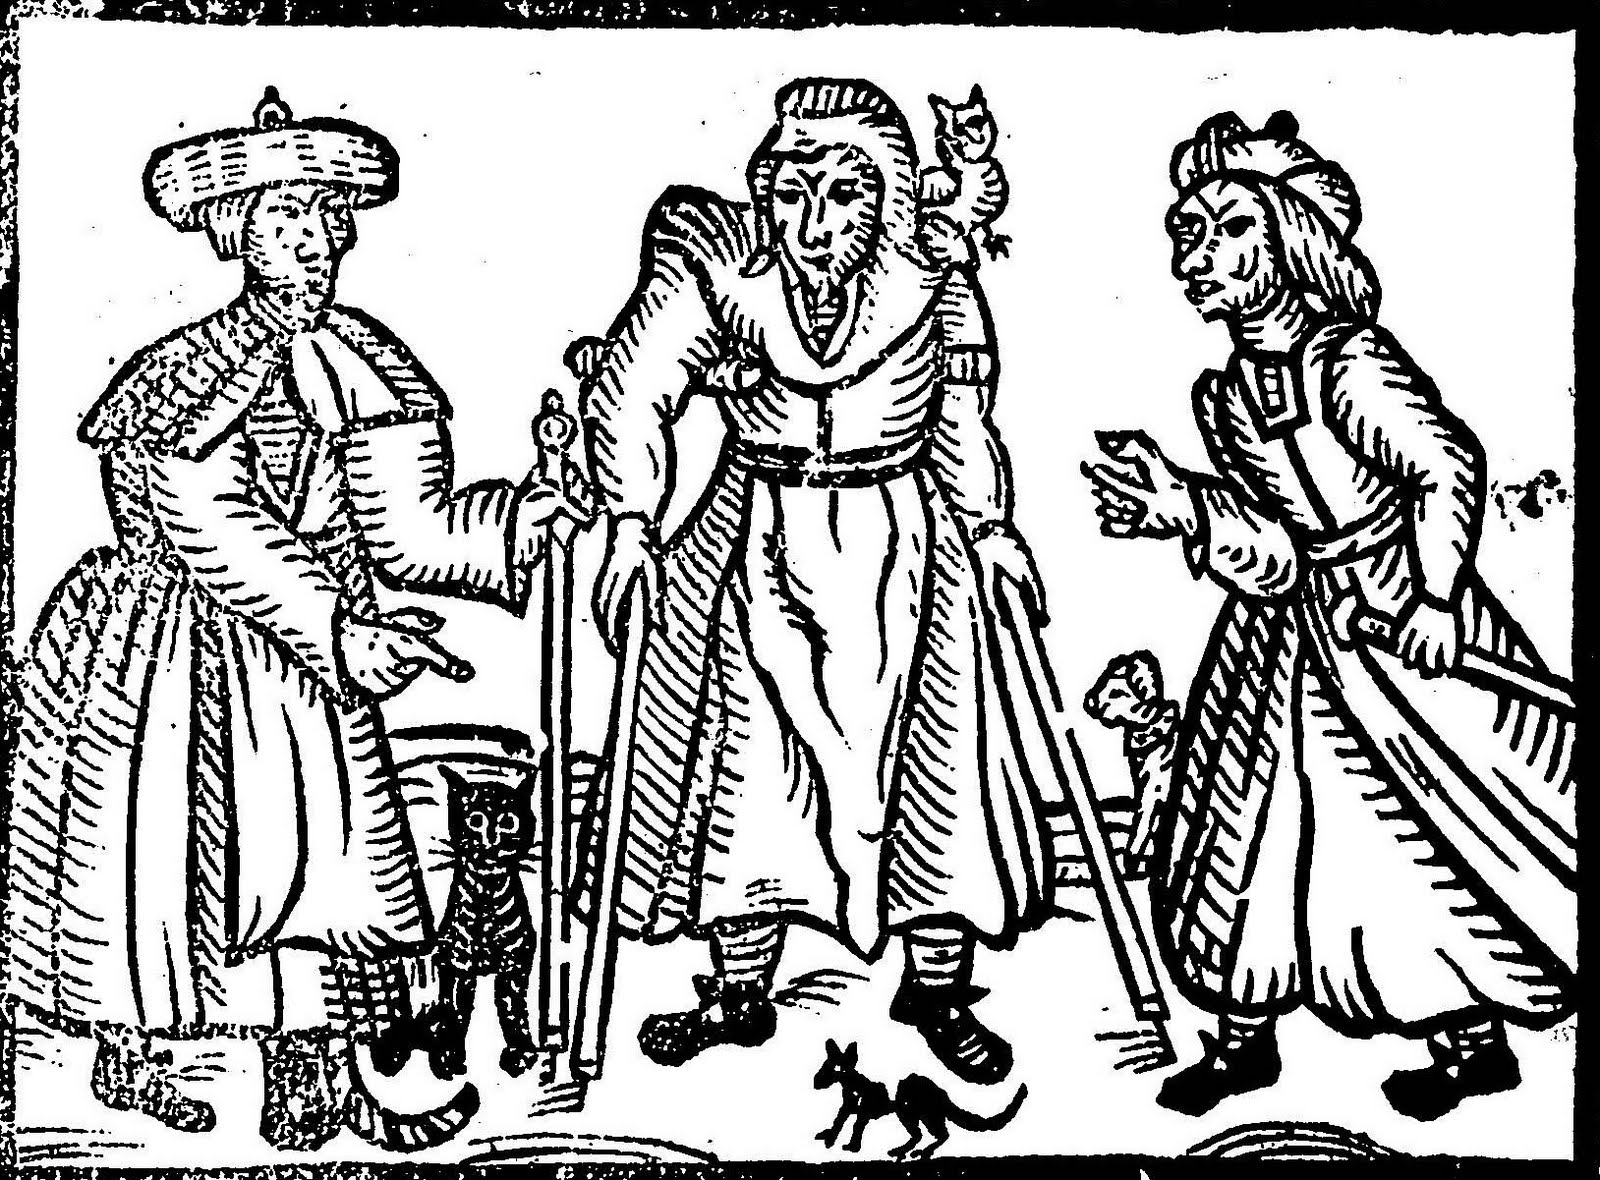 elizabethan witchcraft and witches It was legal to kill witches because of the witchcraft act passed in 1563, which set  out steps to  there are still elizabethan superstitions that we follow today.